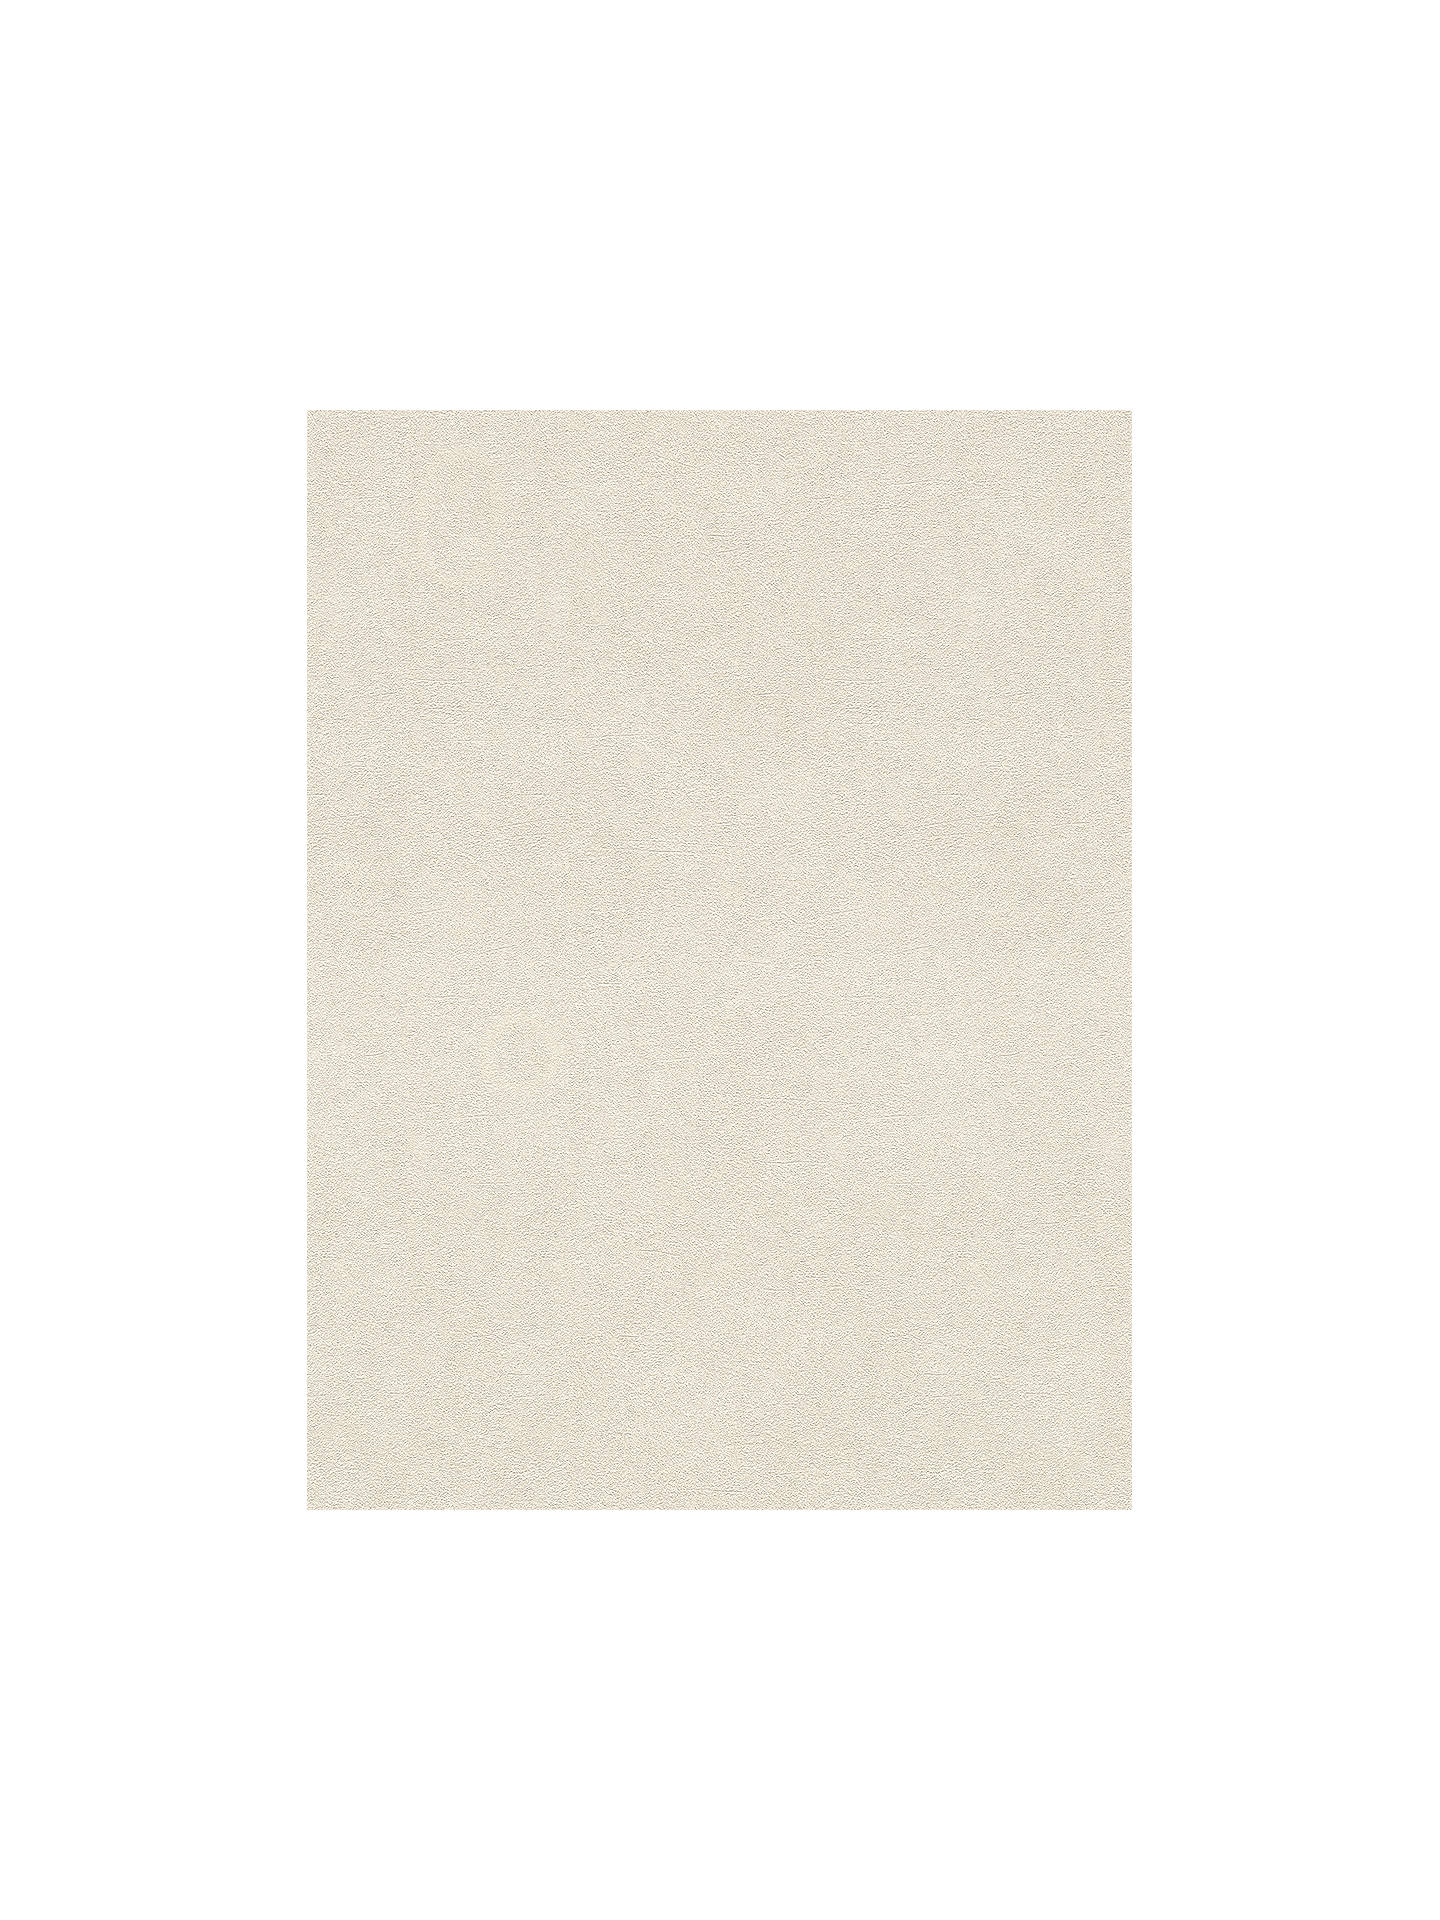 Buy Galerie Concrete Wallpaper, 467116 Online at johnlewis.com